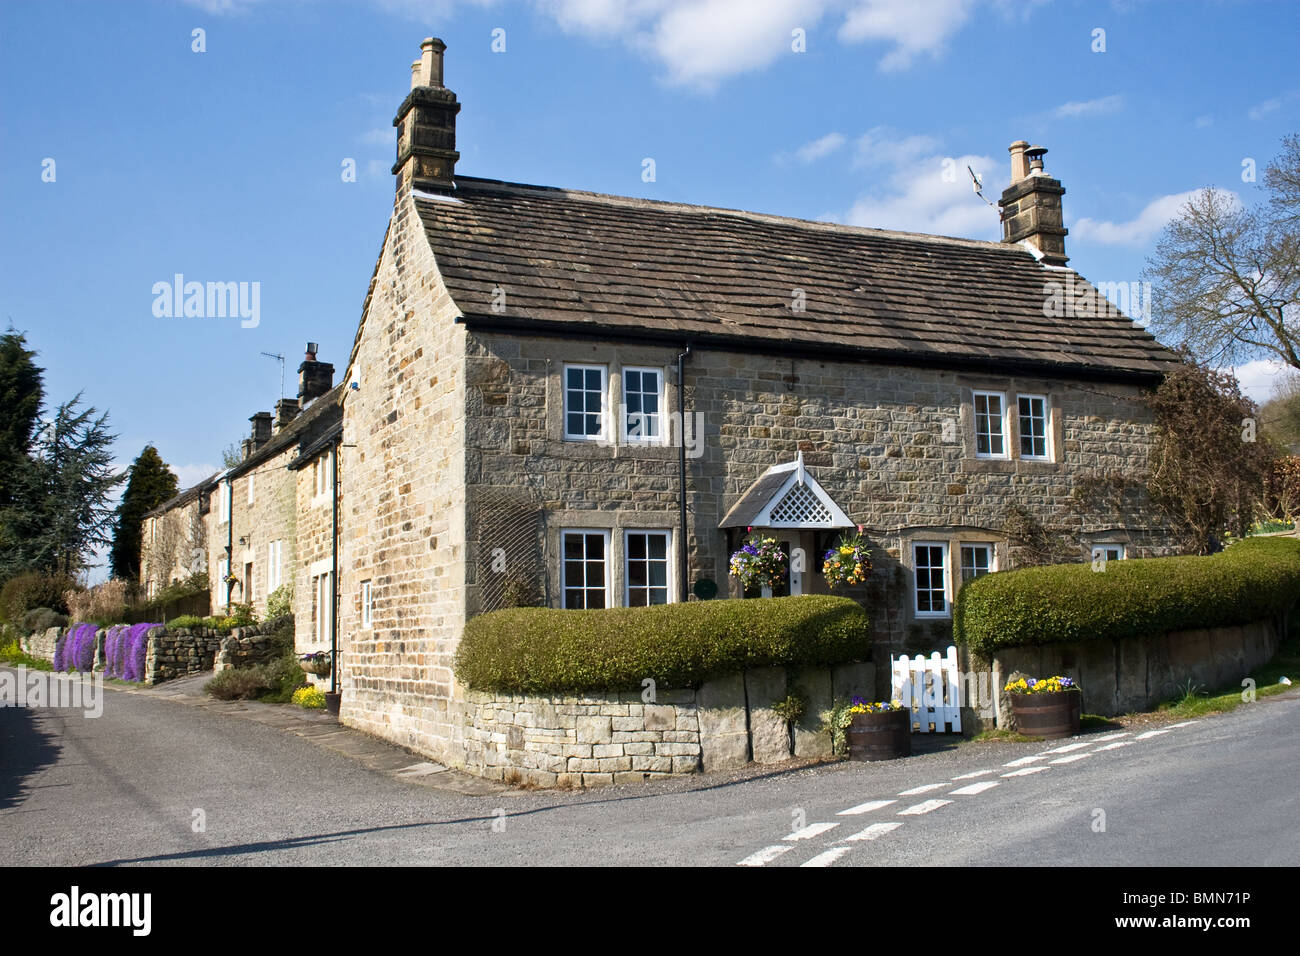 Cottages, Froggatt, Peak District, Derbyshire, England, UK - Stock Image